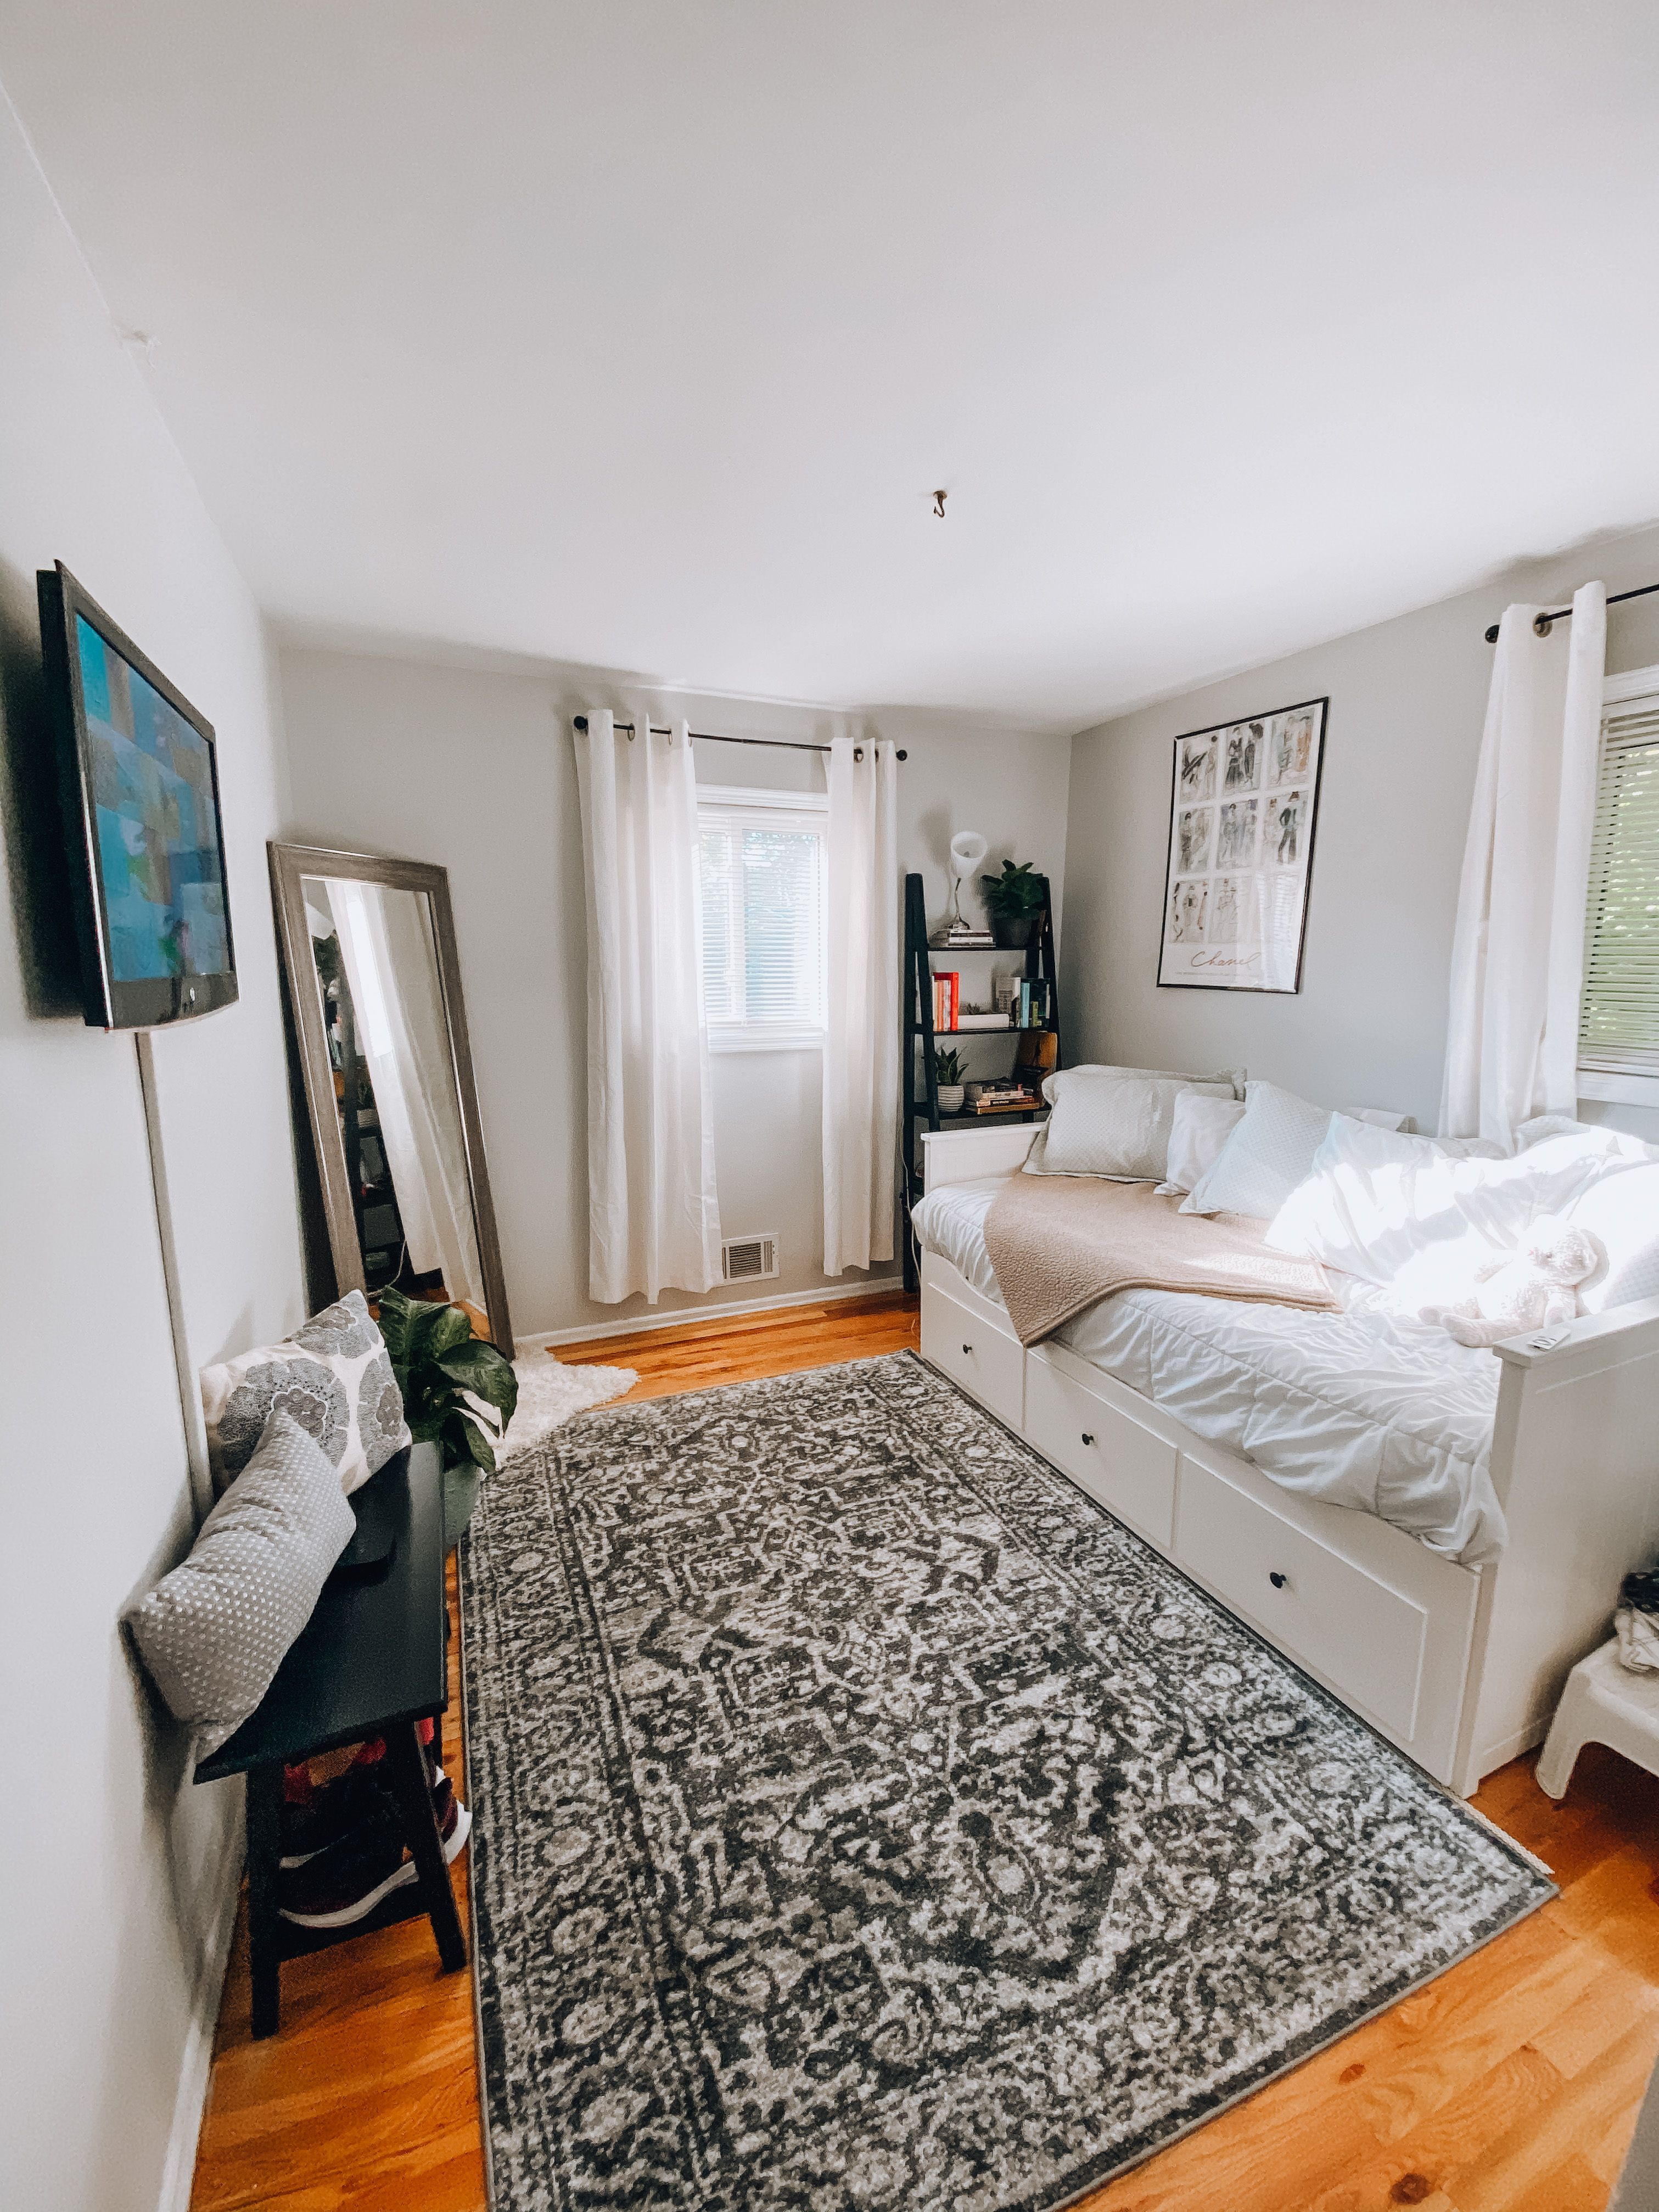 Guest Room Makeover Small Bedroom Makeover Ikea Small Bedroom Bedroom Makeover Bedroom decor ideas ikea